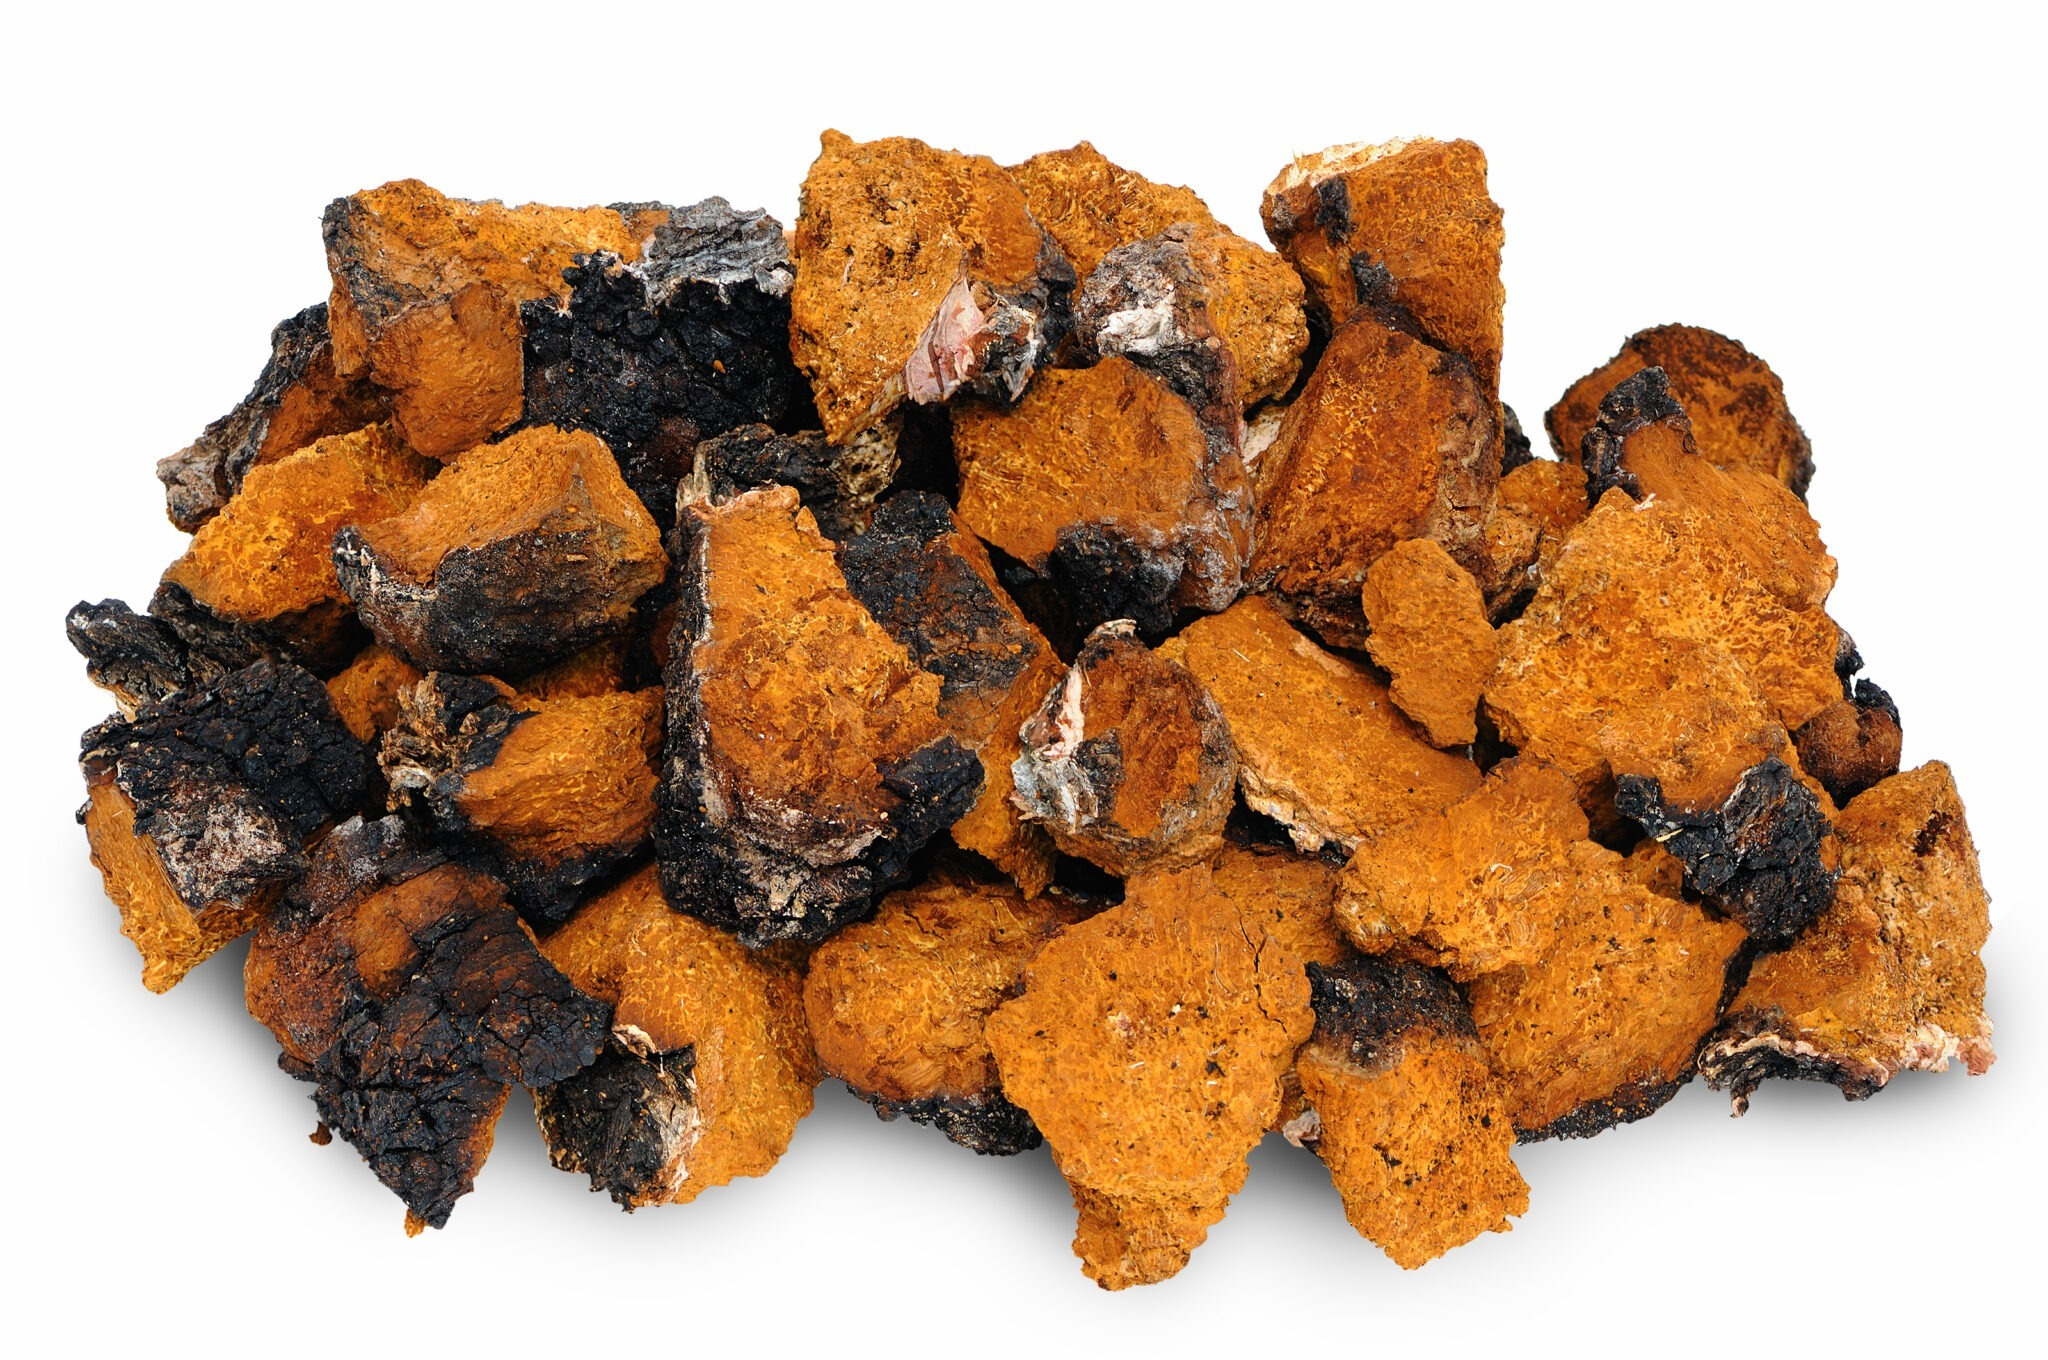 chaga mushroom health benefits and side effects